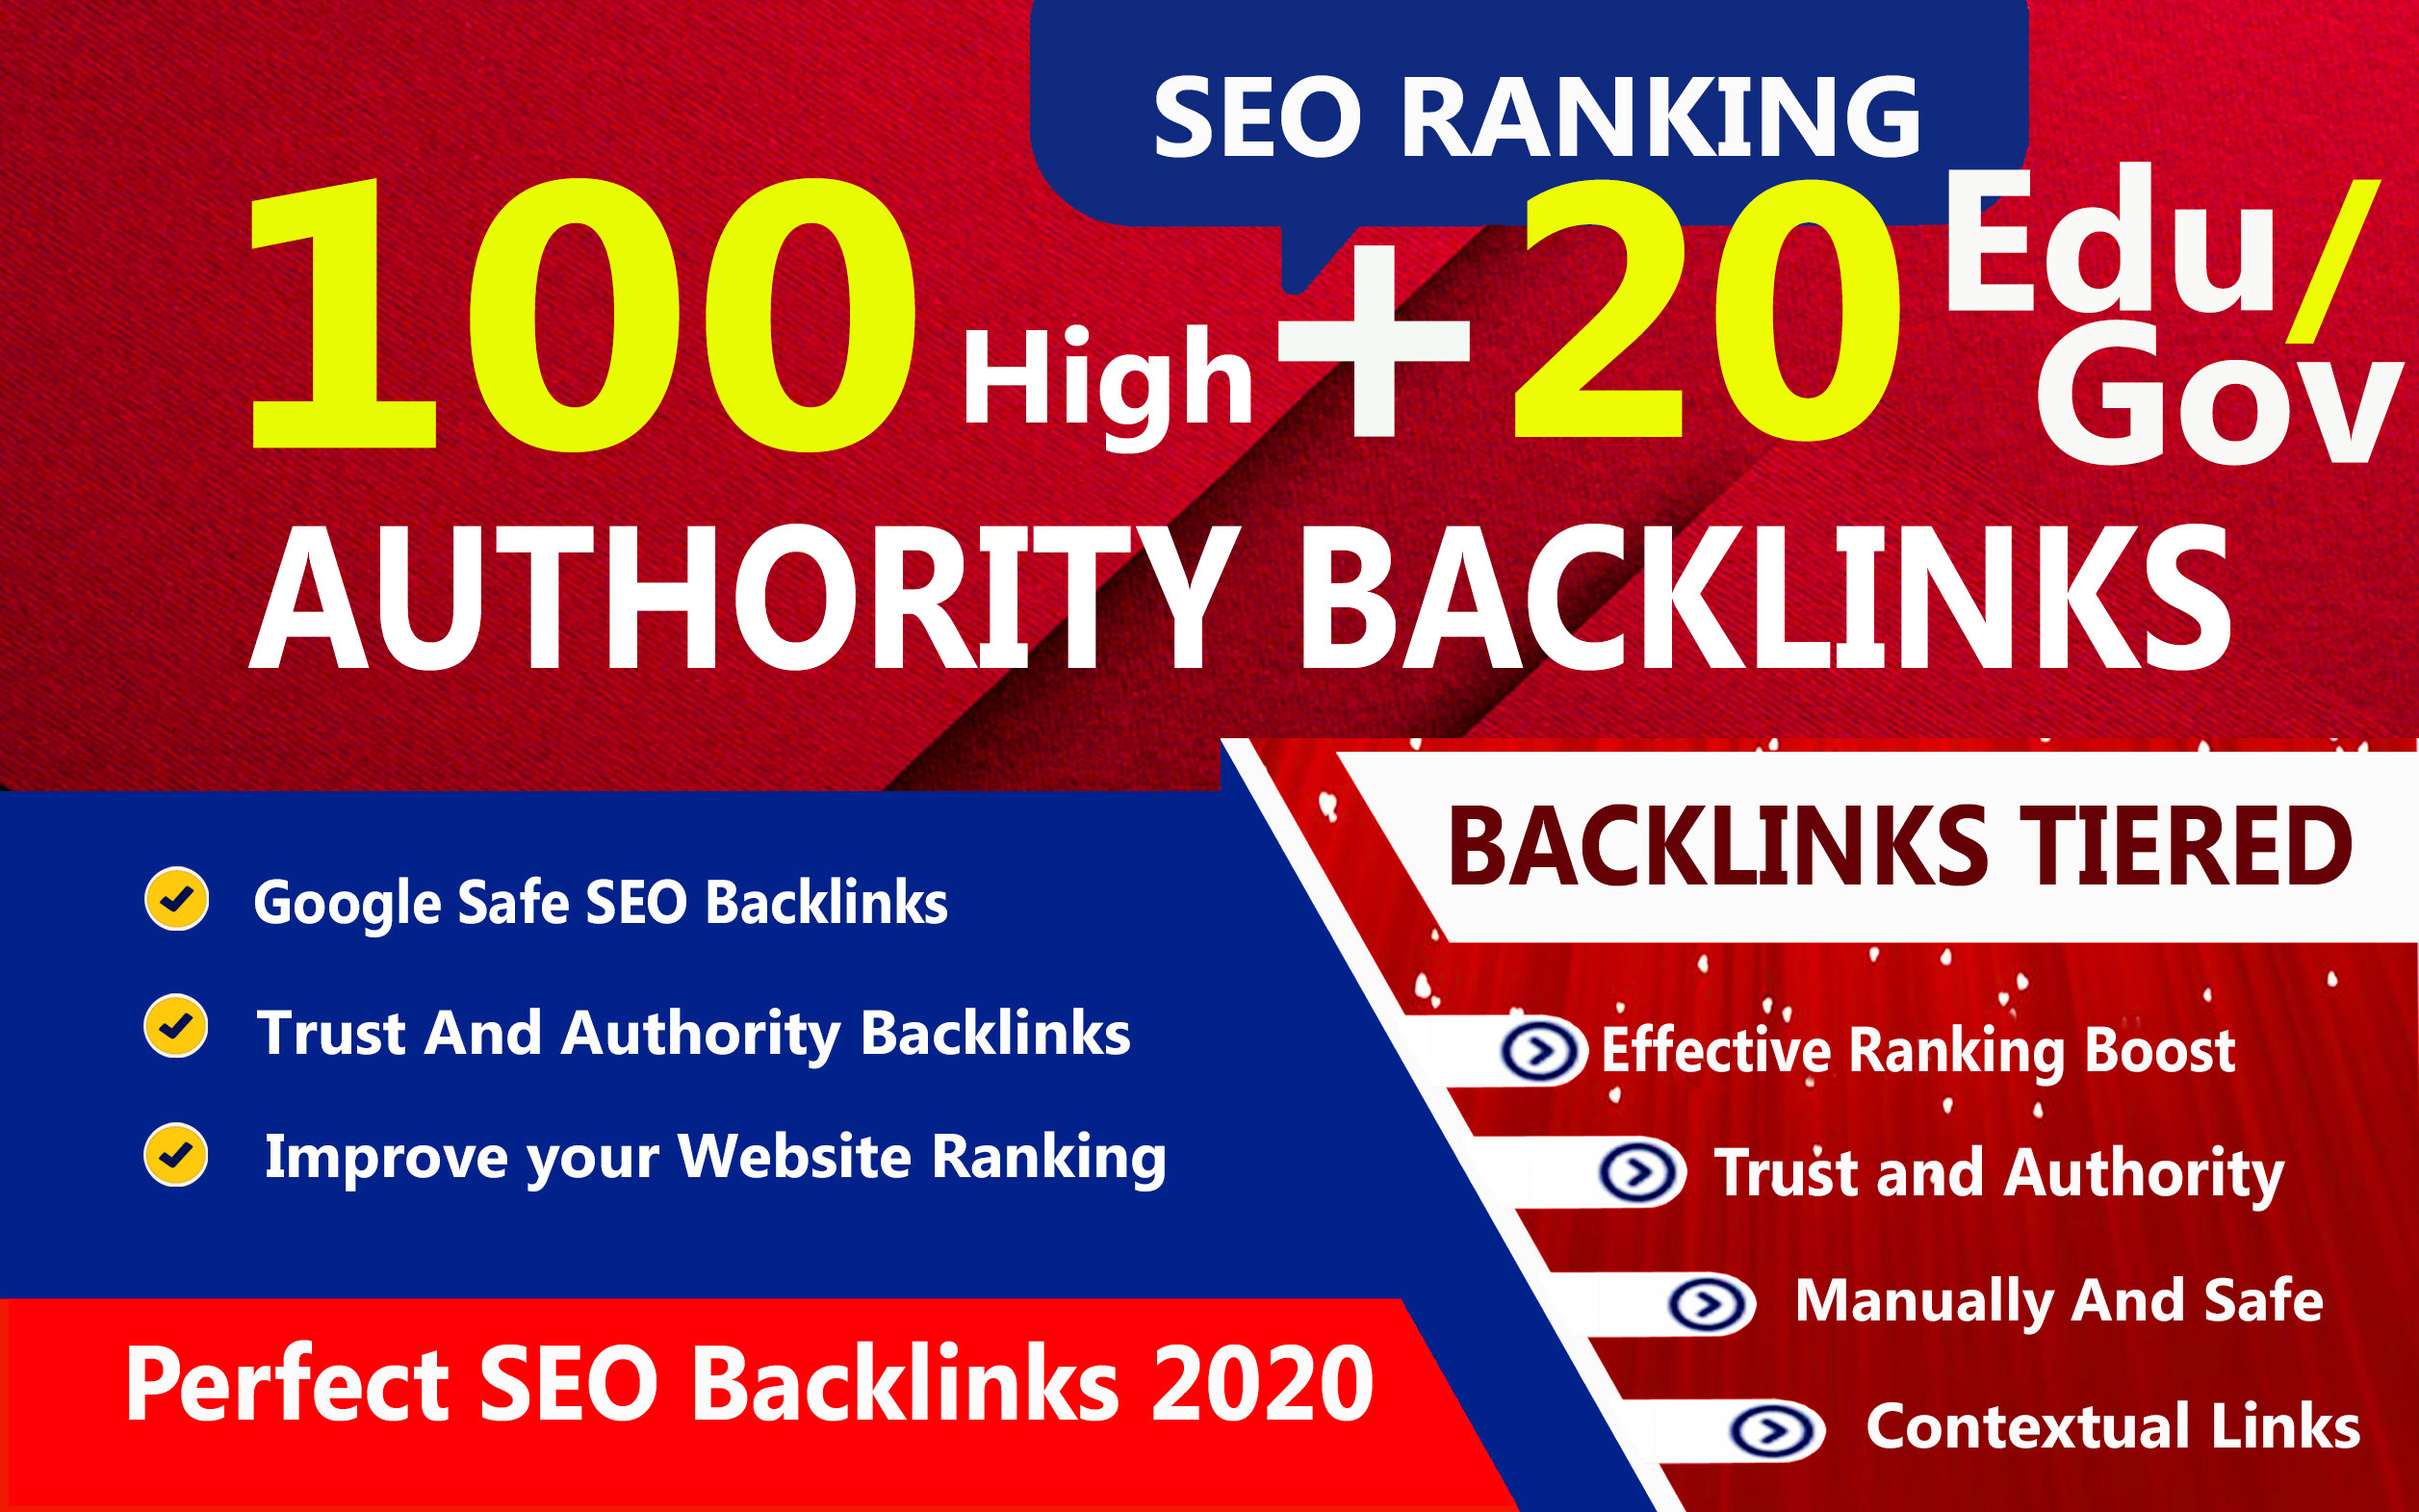 Latest And Manually 100 Pr9 + 20 Edu-Gov High Domains Authority Safe Seo Backlinks- White Hat SEO